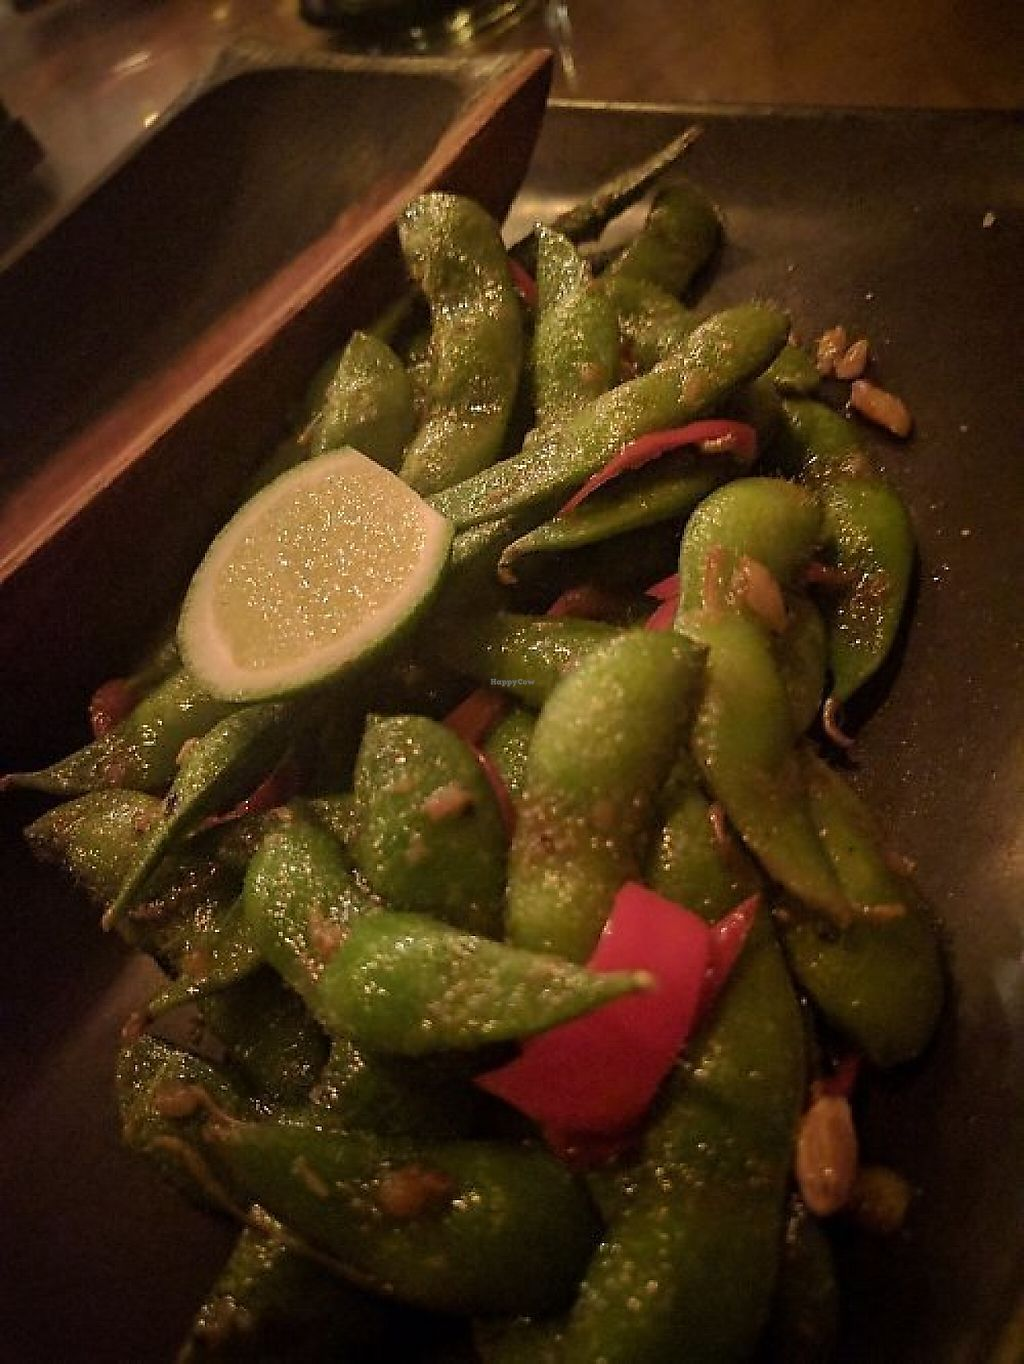 """Photo of Kismet Restaurant & Lounge  by <a href=""""/members/profile/wildeyedgirl"""">wildeyedgirl</a> <br/>Garlic, chilli, lime edamame cooked with coconut oil - amazing! <br/> May 16, 2017  - <a href='/contact/abuse/image/92216/259215'>Report</a>"""